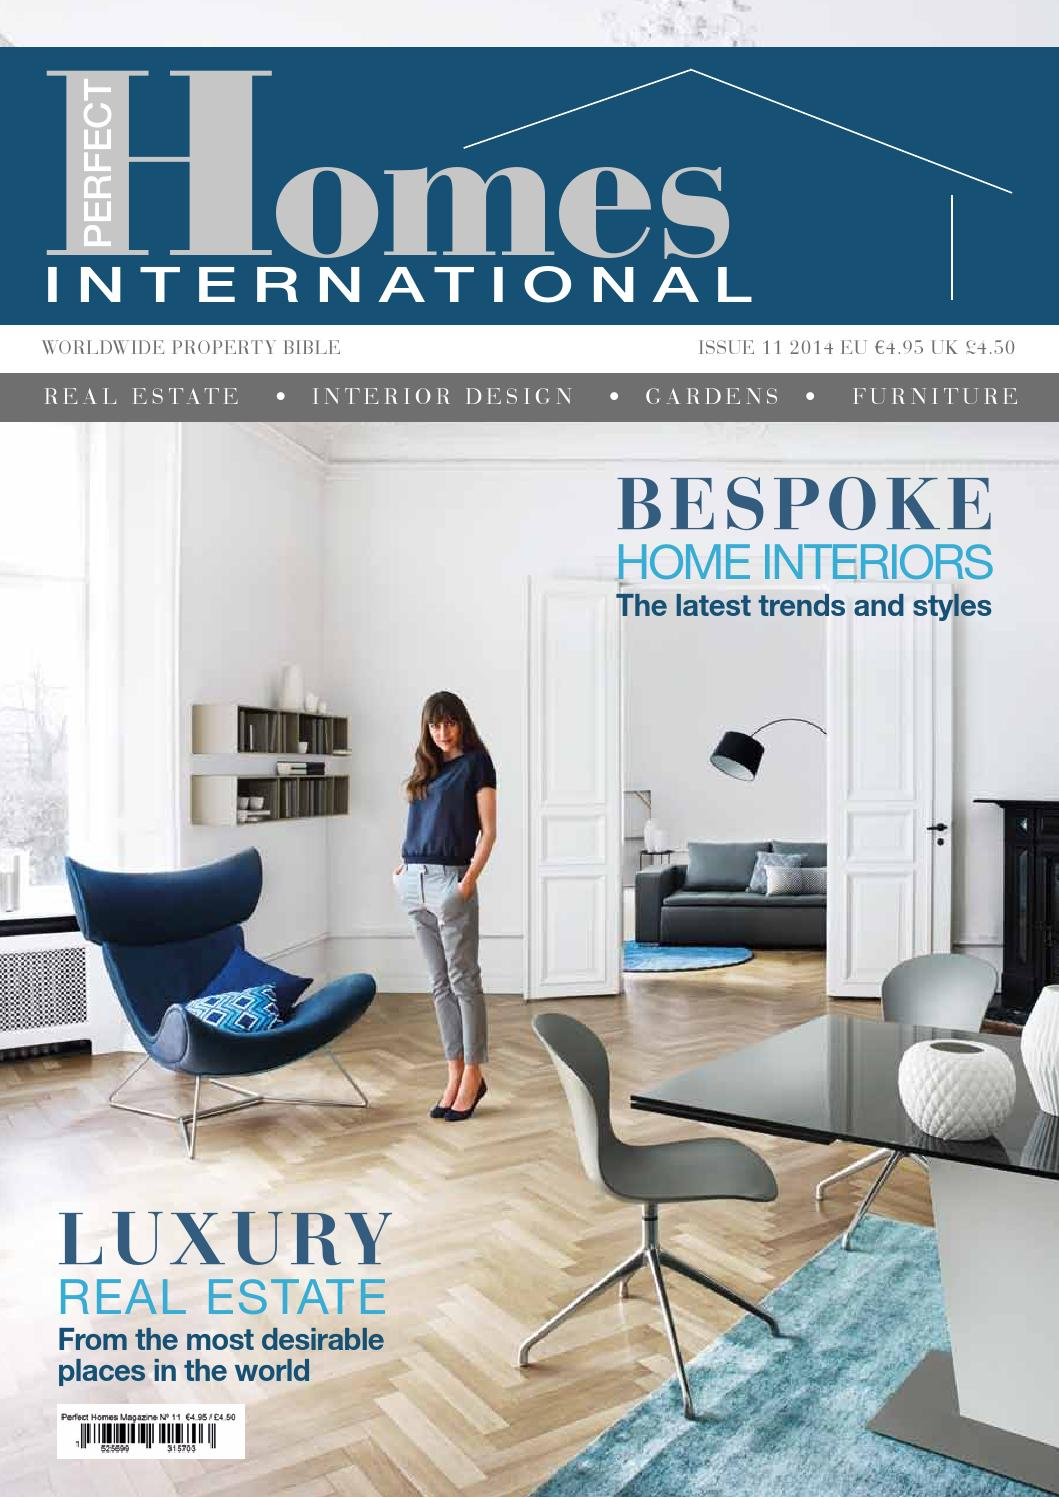 Muebles Tamara Fox Santiago - Perfect Homes International Magazine N 11 By Clearvision Marketing [mjhdah]http://www.somosprimos.com/sp2018/spmar18/clh3.jpg